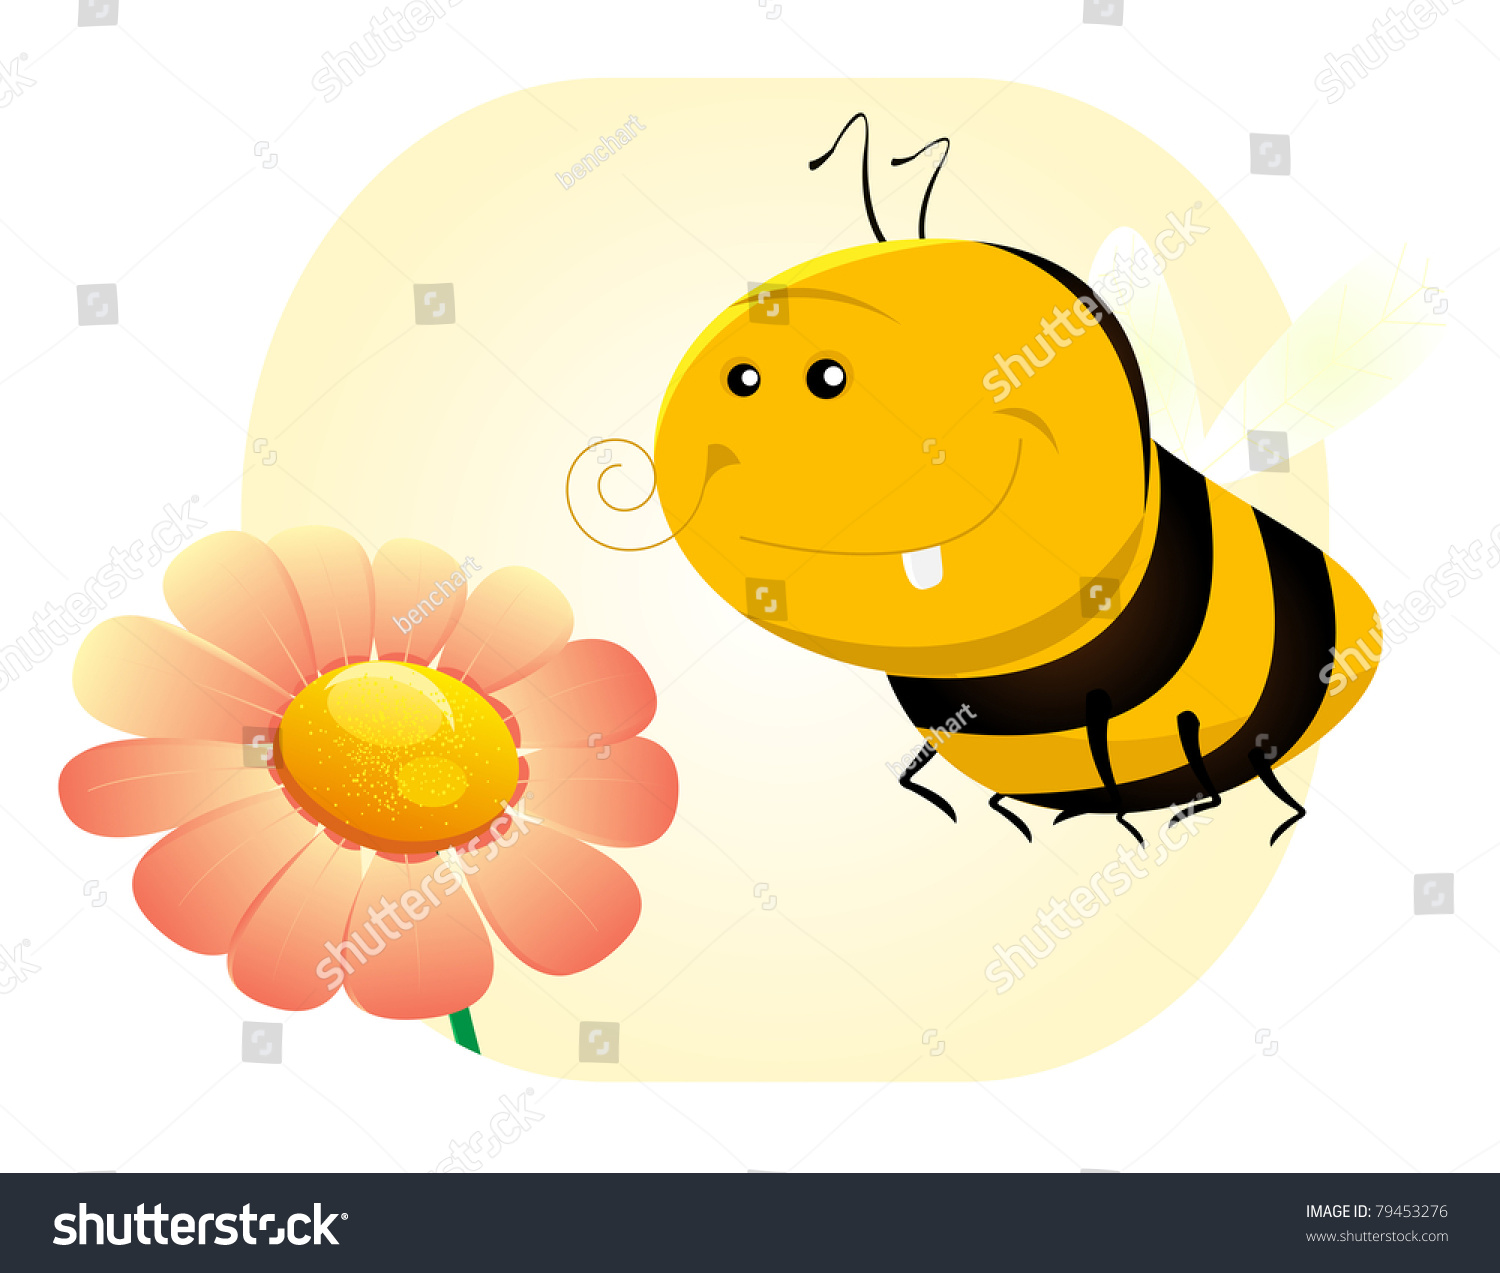 cartoon funny bee flower illustration funny stock illustration